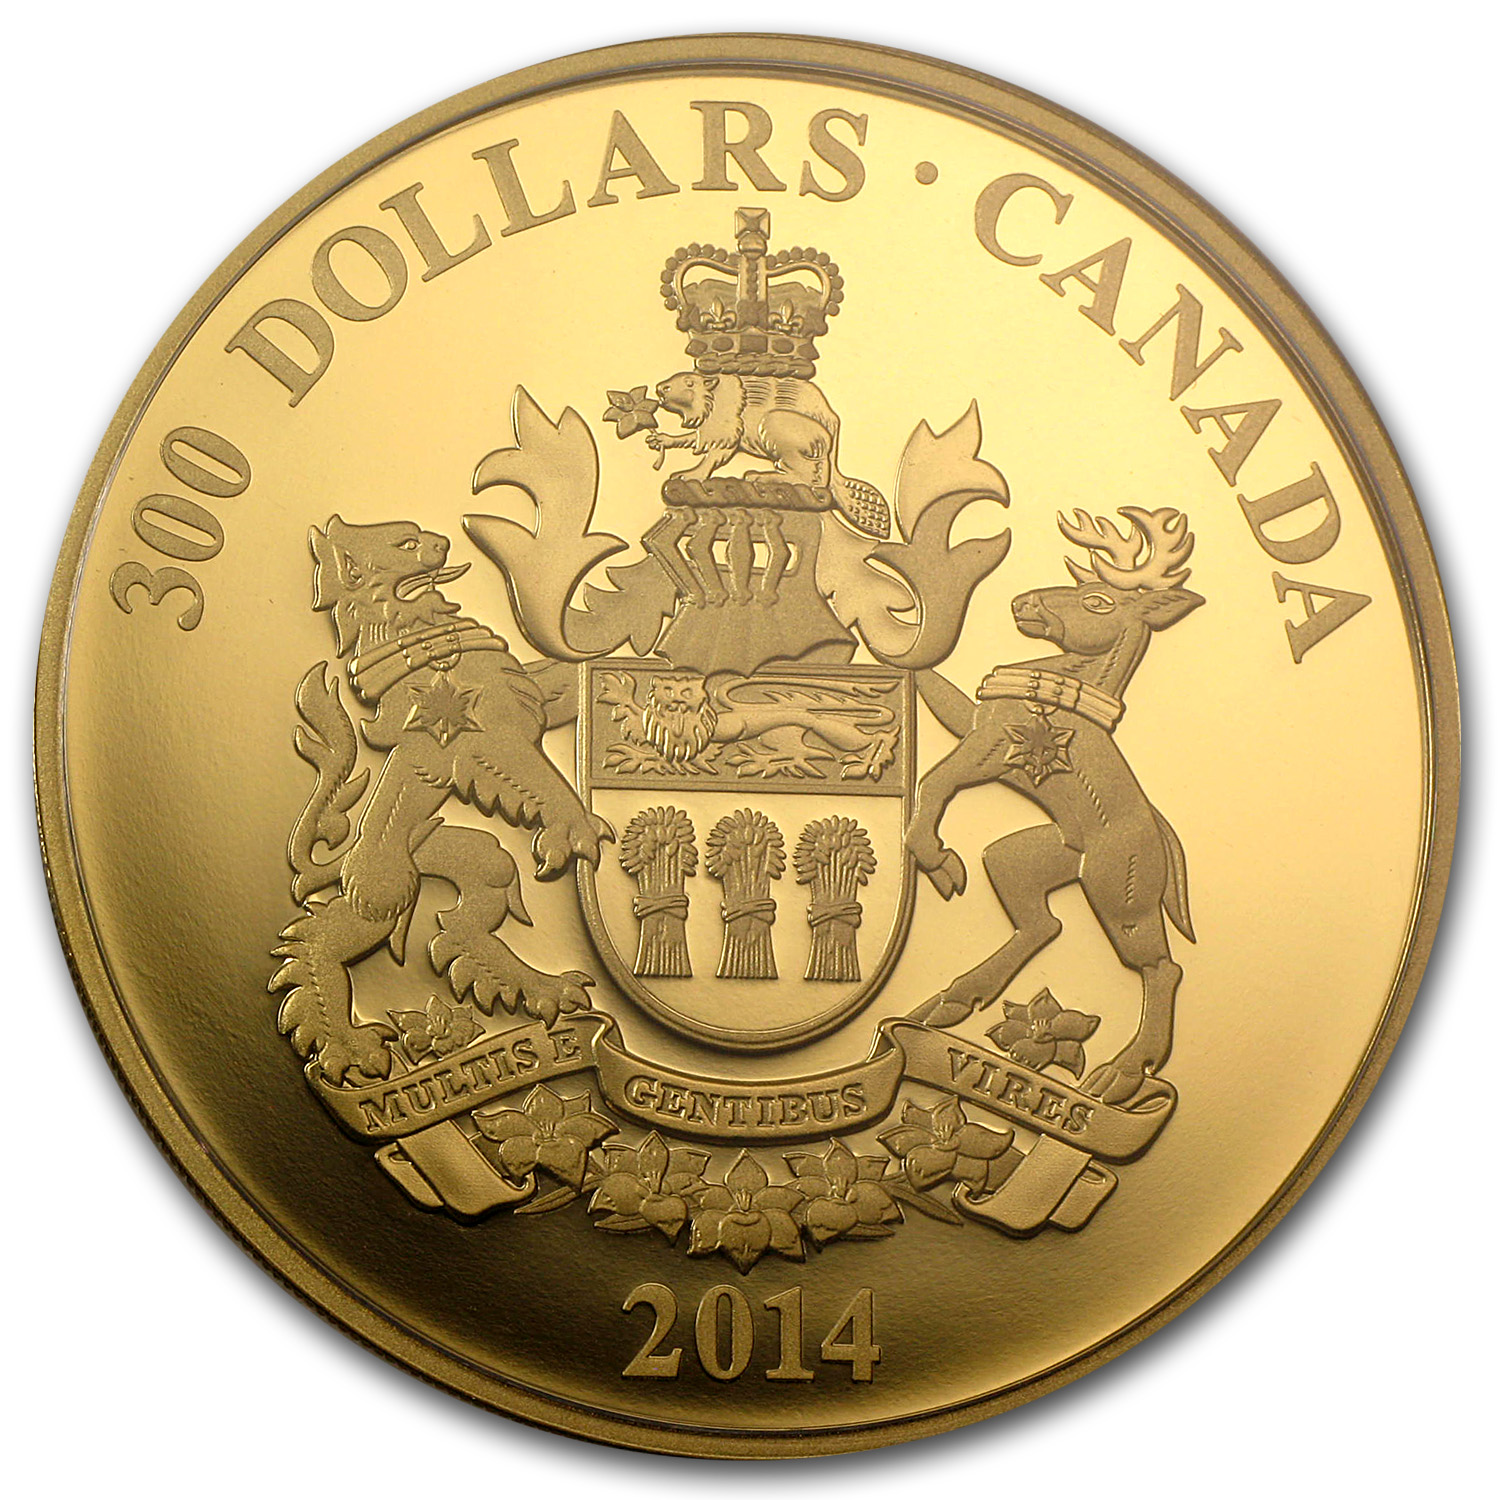 2014 Canada Proof Gold $300 Saskatchewan Coat of Arms